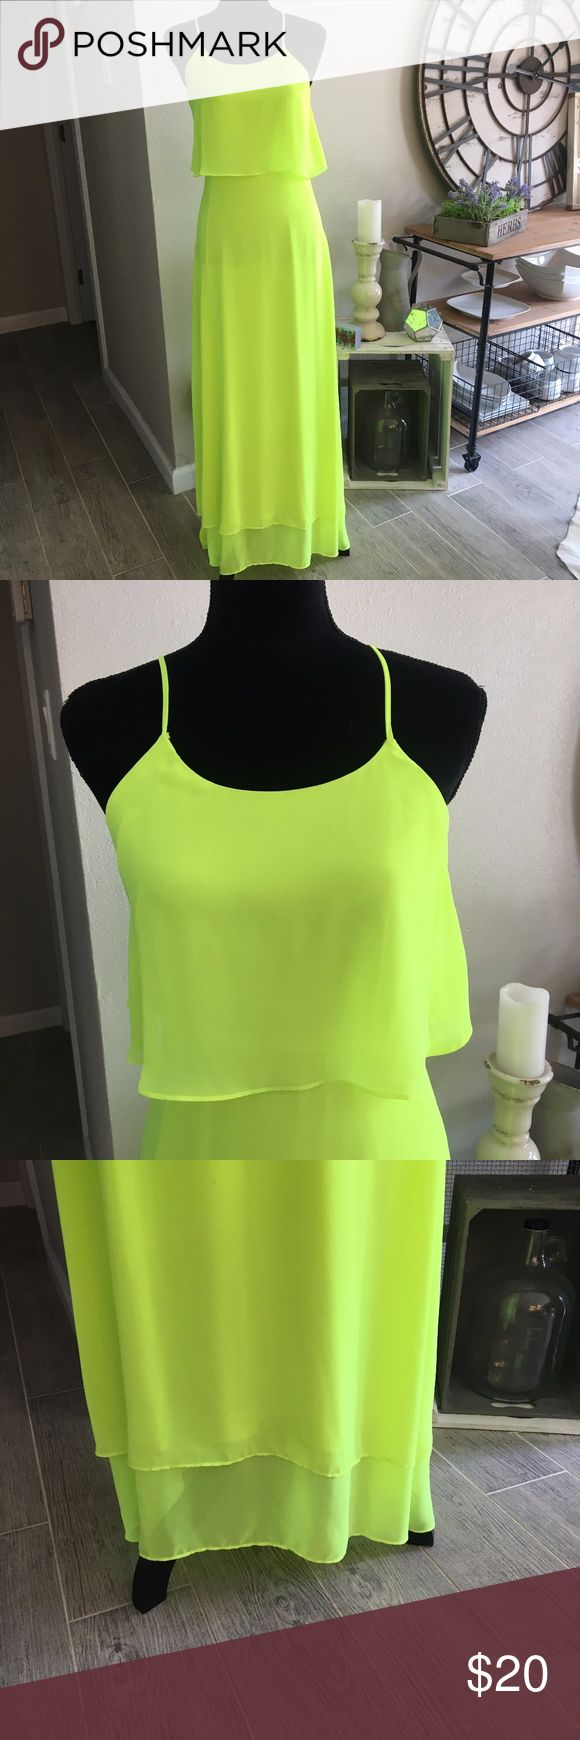 """Gianni Bini Bright Neon Green Dress Size 4 Bright Neon Green Racerback Maxi Dress. Gianni Bini size 4.Only flaw is the front right strap is starting to come off seam. Easy fix with a little bit of sewing and good as new. Flaw is pictured. 100% Polyester. Zipper on side.  Armpit to Armpit - 17"""" Length - 56.5""""  (A) Gianni Bini Dresses"""